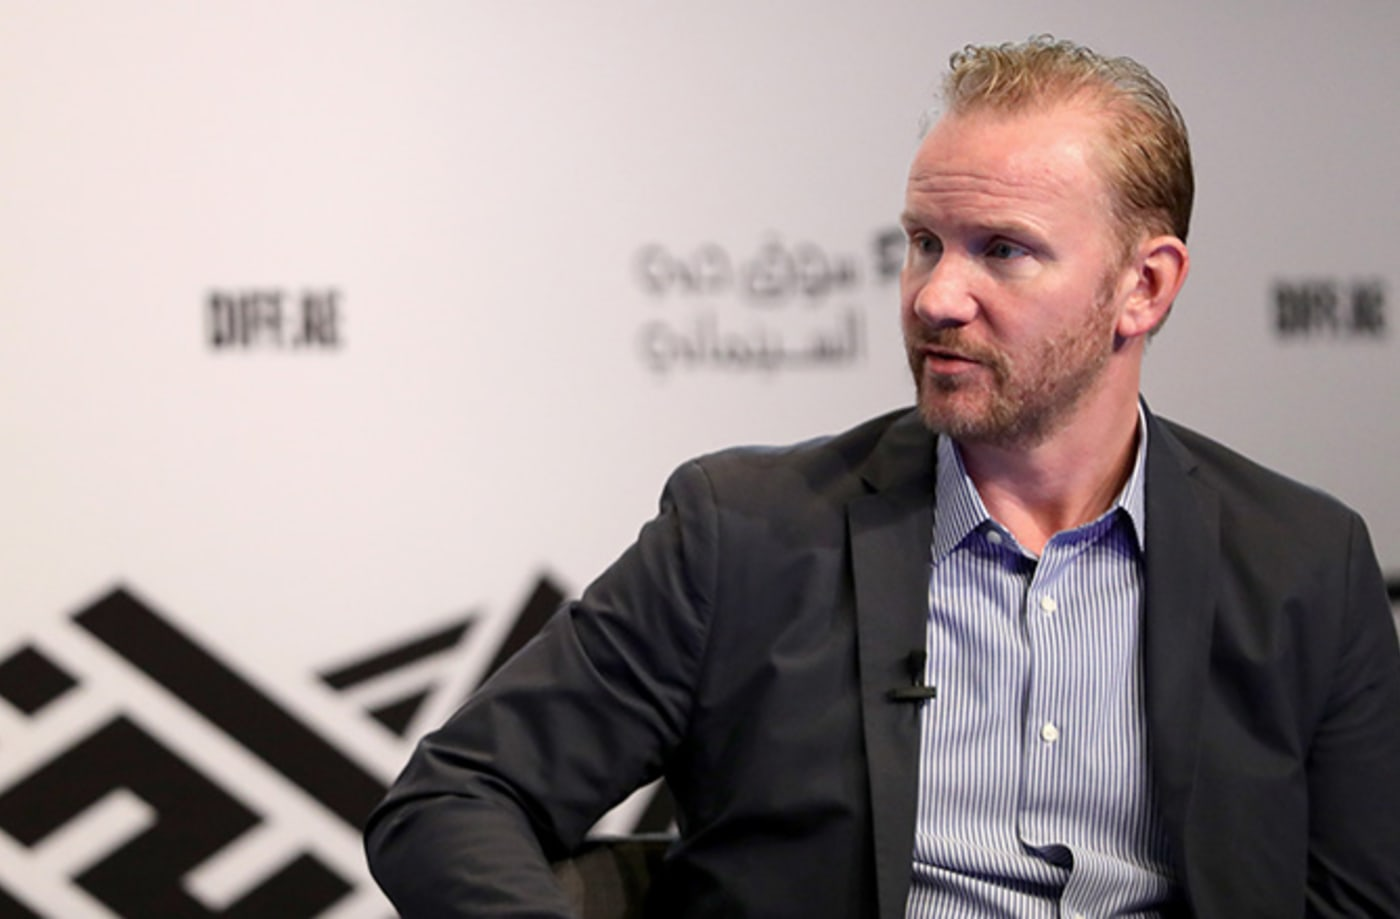 This is a photo of Morgan Spurlock.